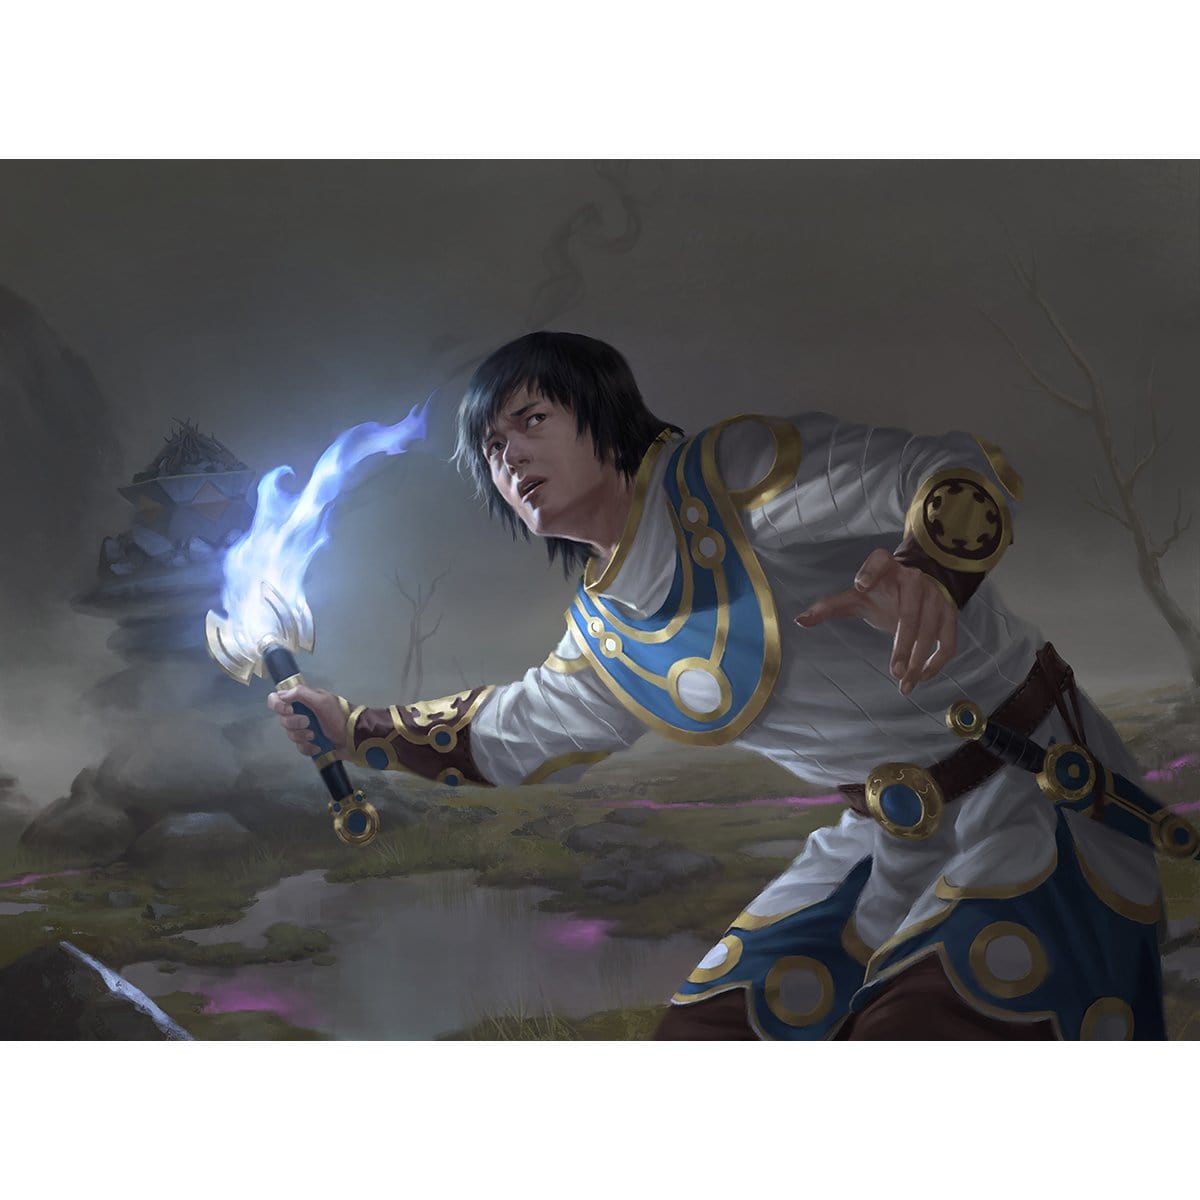 Silverflame Squire Print - Print - Original Magic Art - Accessories for Magic the Gathering and other card games